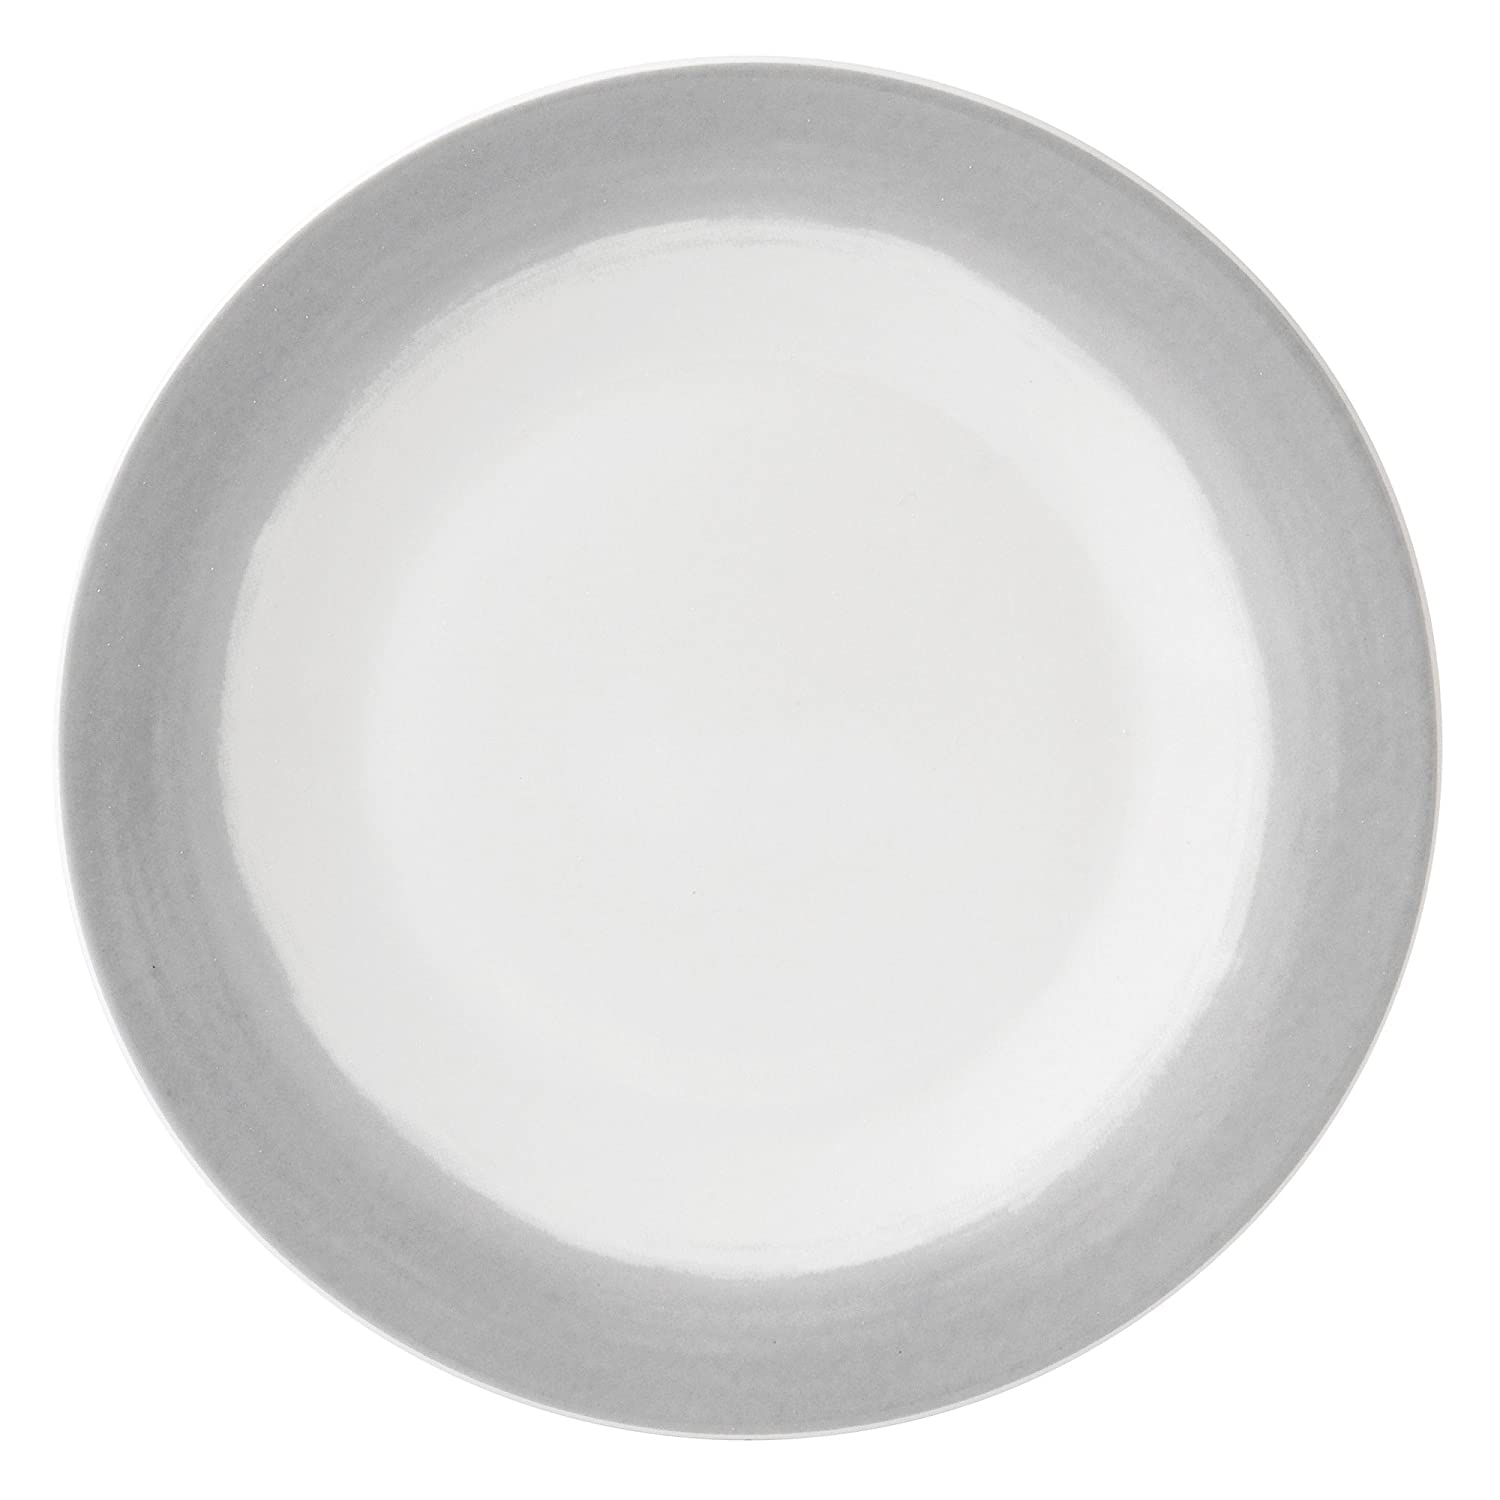 Wedgwood Vera Simplicity Ombre Round Plate, 9